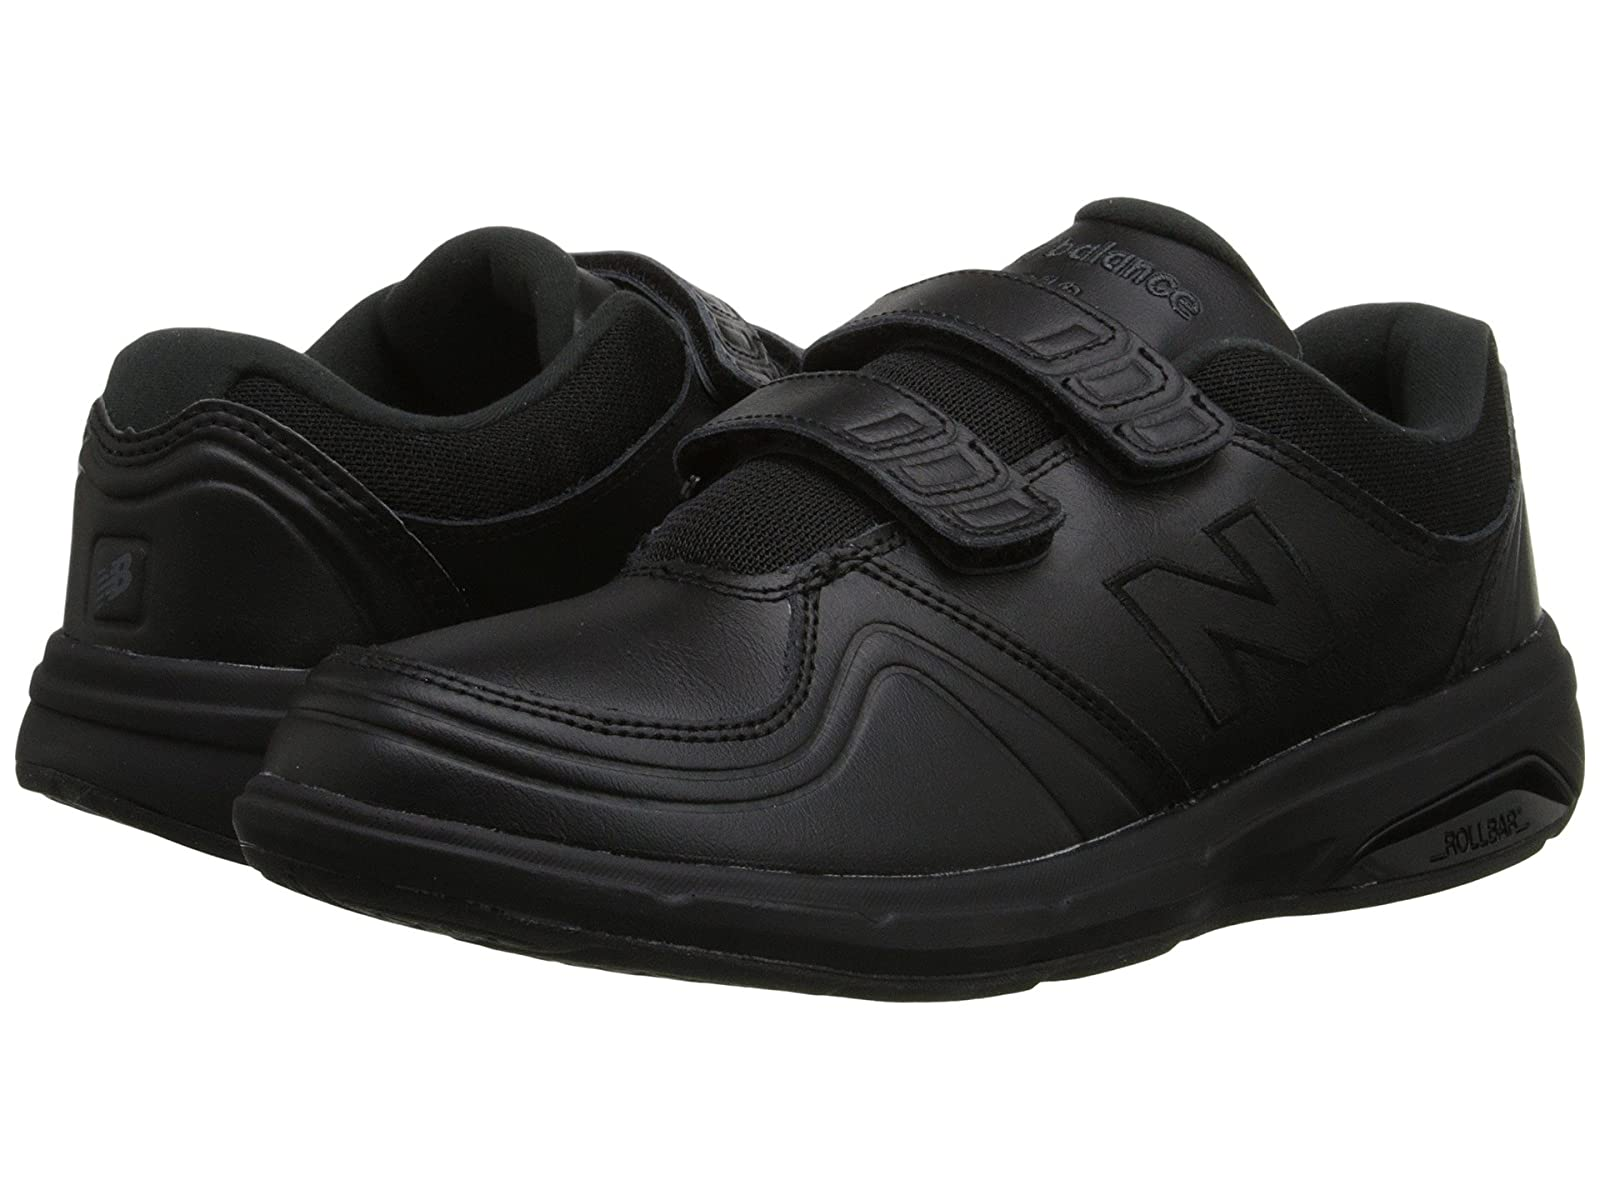 New Balance WW813Hv1Atmospheric grades have affordable shoes